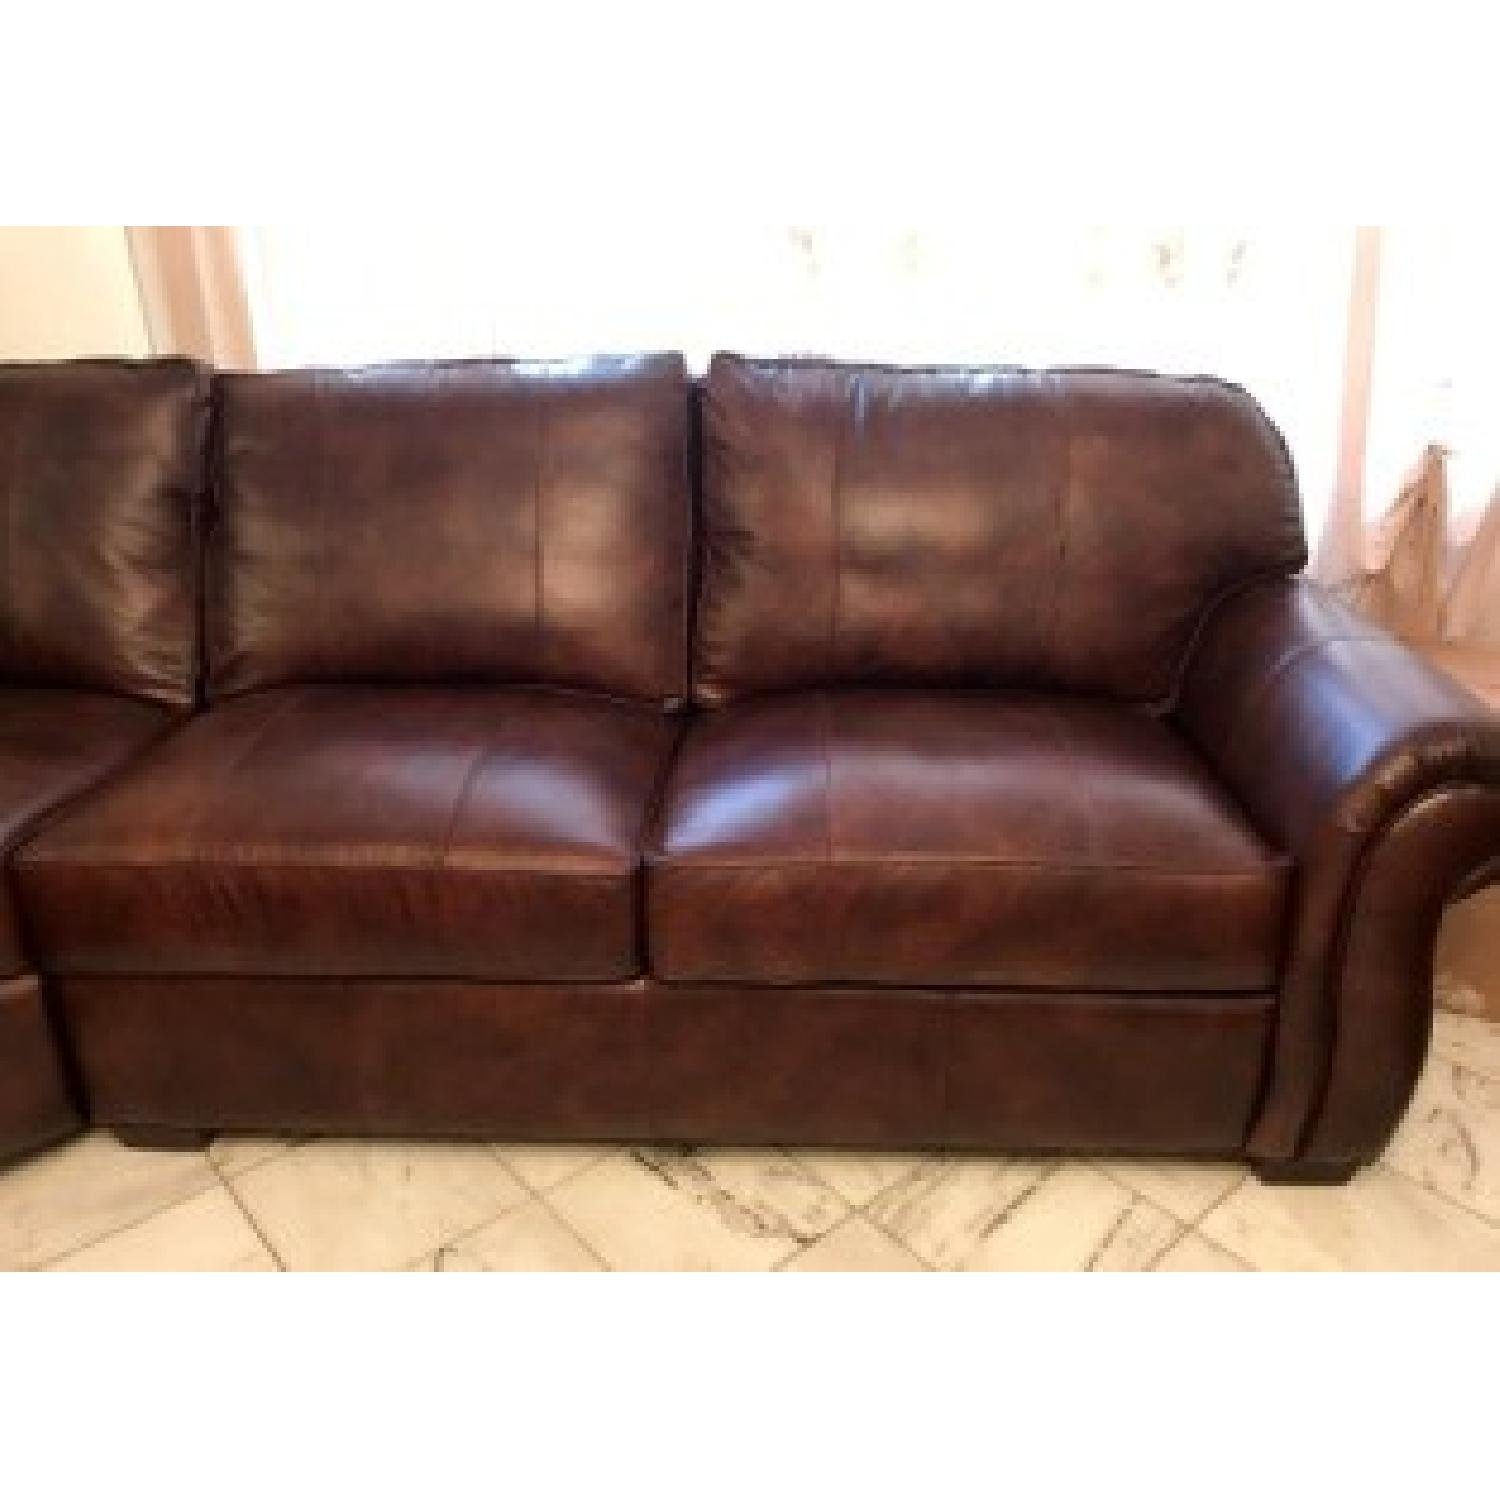 Raymour & Flanigan Emery 3-Piece Leather Sectional - image-4